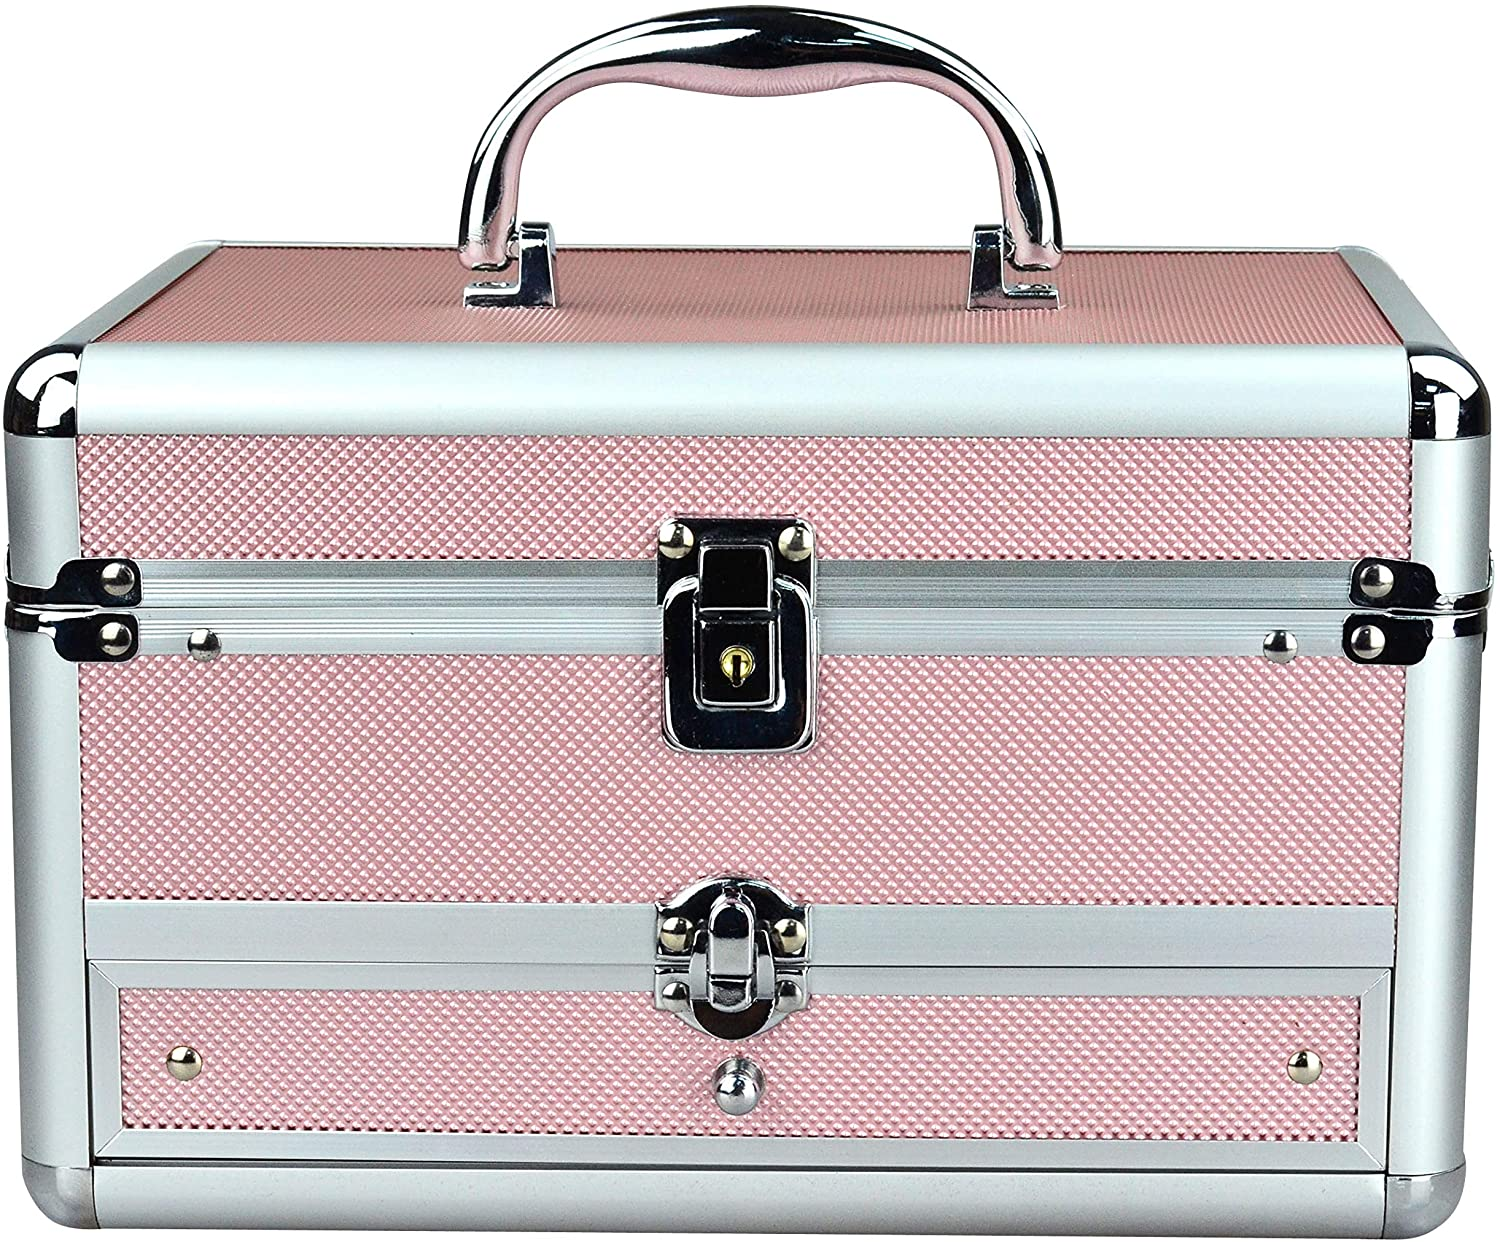 Reme Makeup Train Max 54% OFF Case Cosmetic Trays With and Organizer Ranking TOP15 Dr